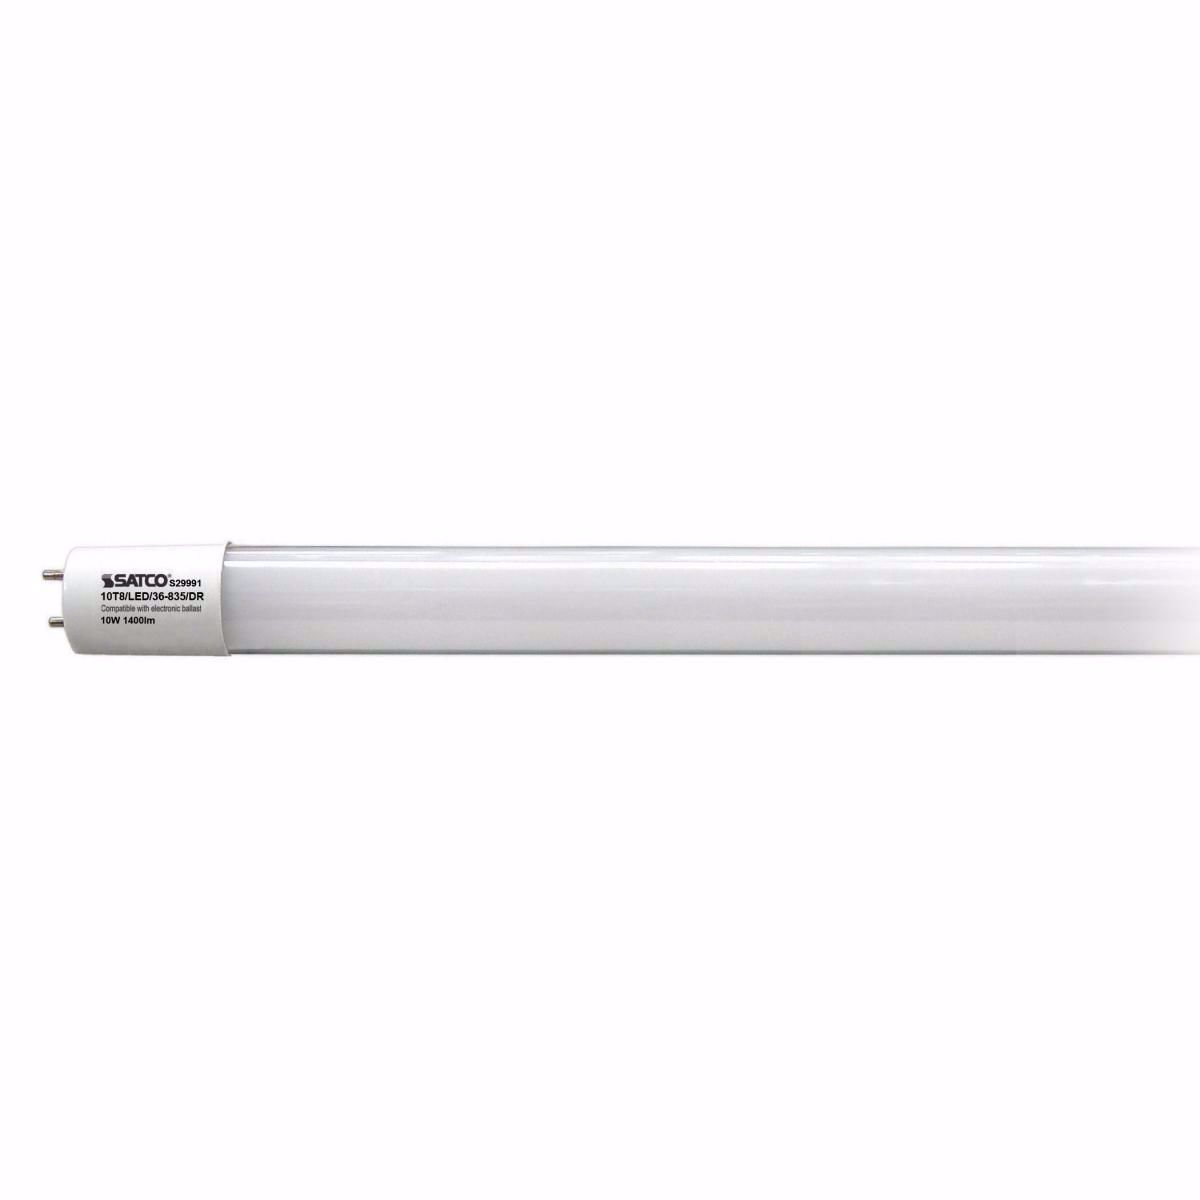 "Picture of SATCO S 29991 10T8/LED/36-835/DR 36"" LED Light Bulb"